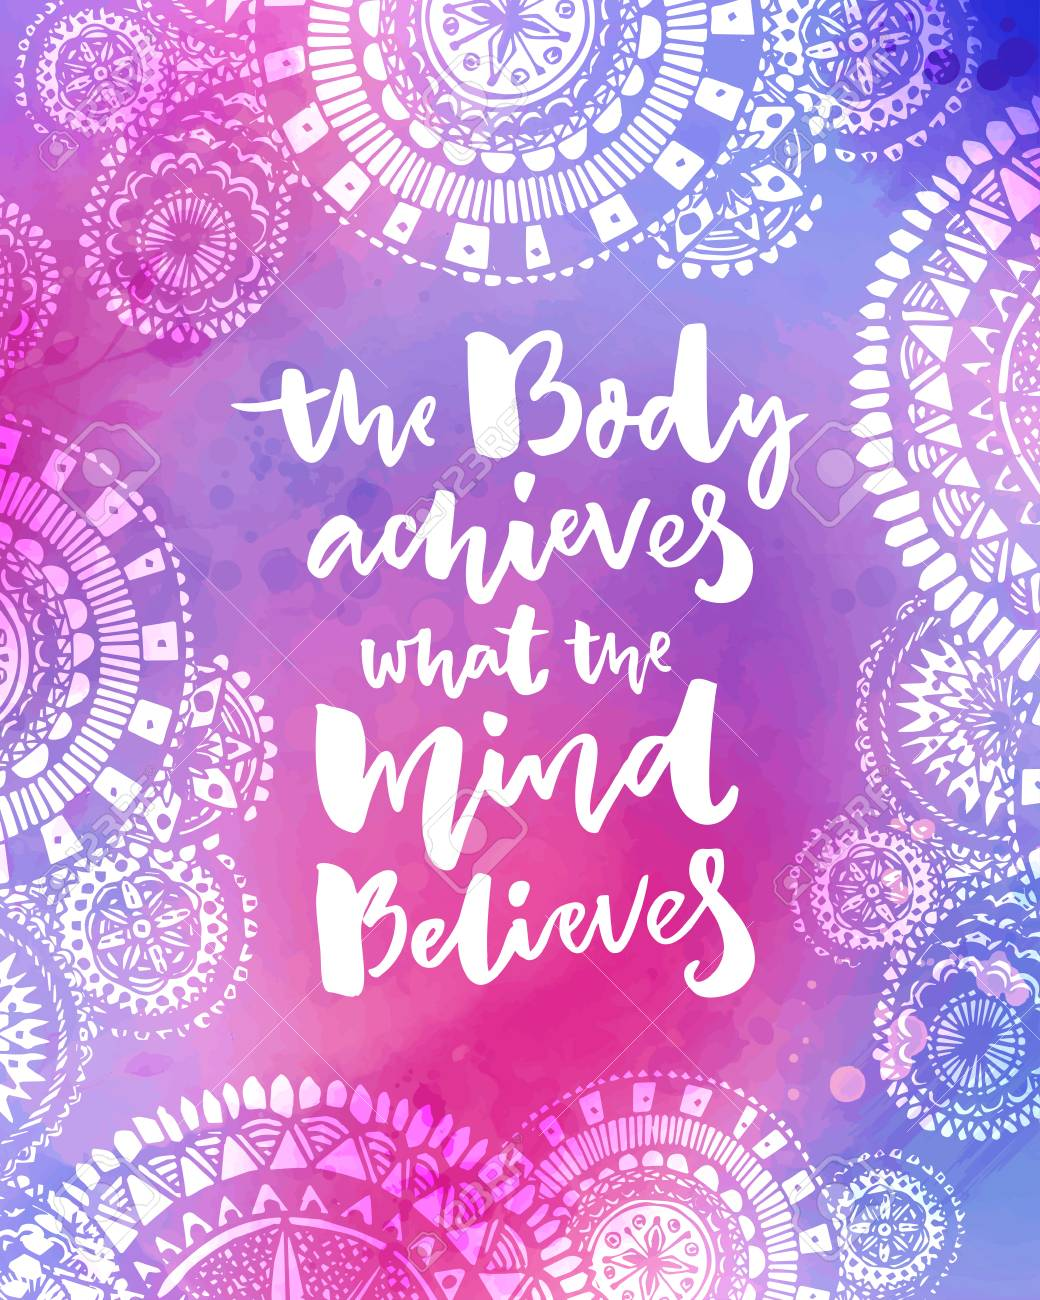 Free Mind Quote Watercolor Print Motivational Quote Therapy Inspirational Poster